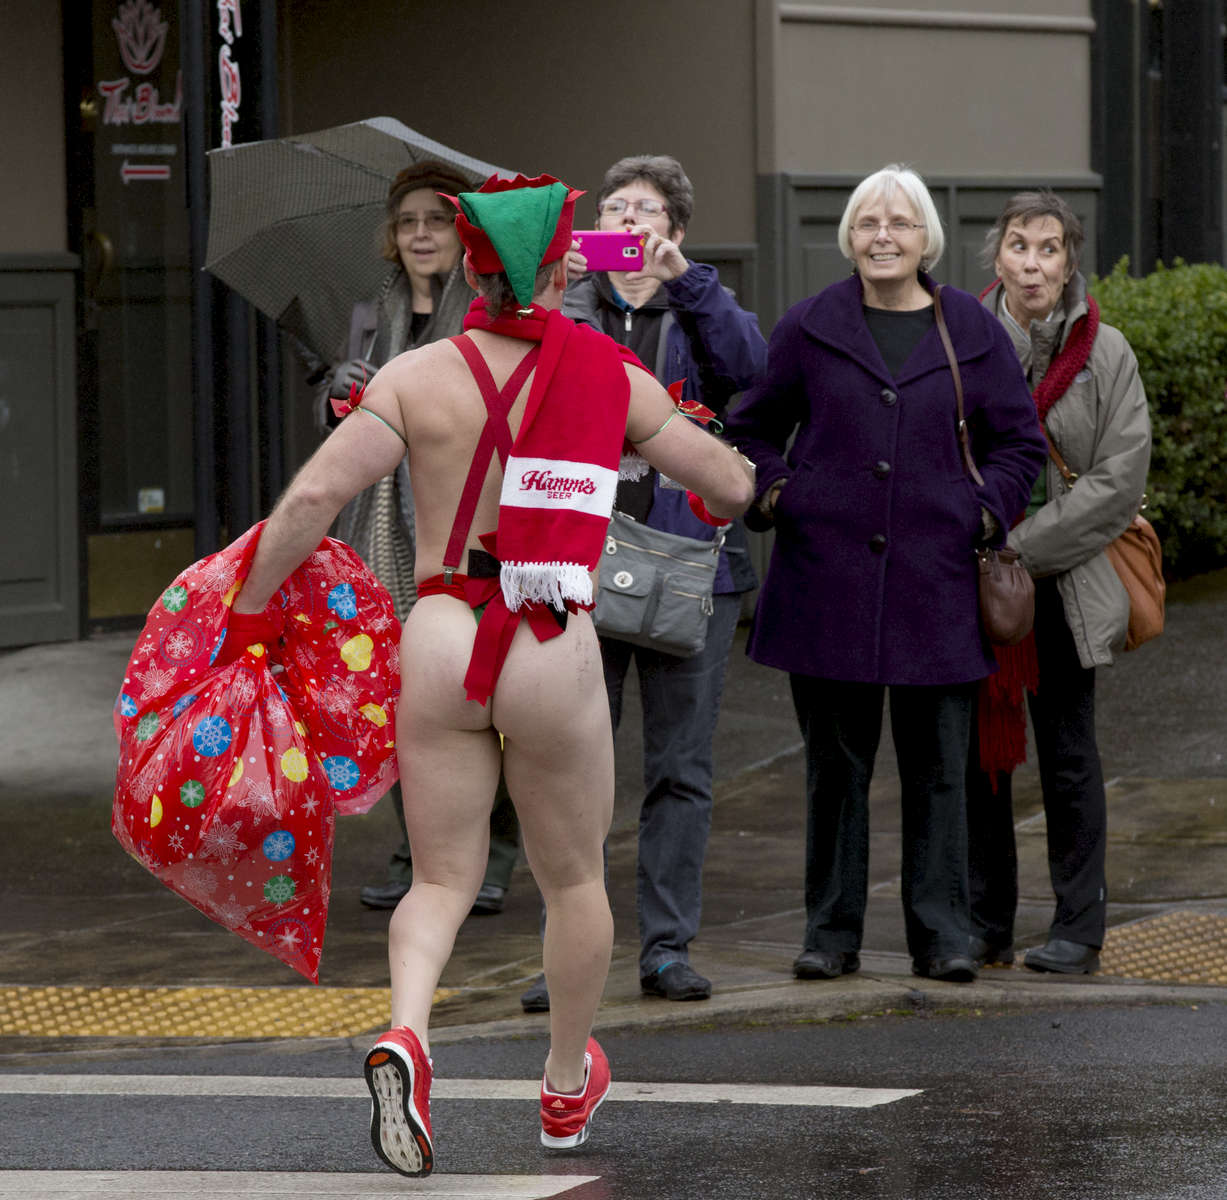 A Santa Speedo participant brings holiday cheer to onlookers as he runs through the streets in northwest Portland in 2014 during the Santa Speedo Run. The event is a fundraiser for the non-profit Ethiopia Project and raised $3000 dollars with the run.